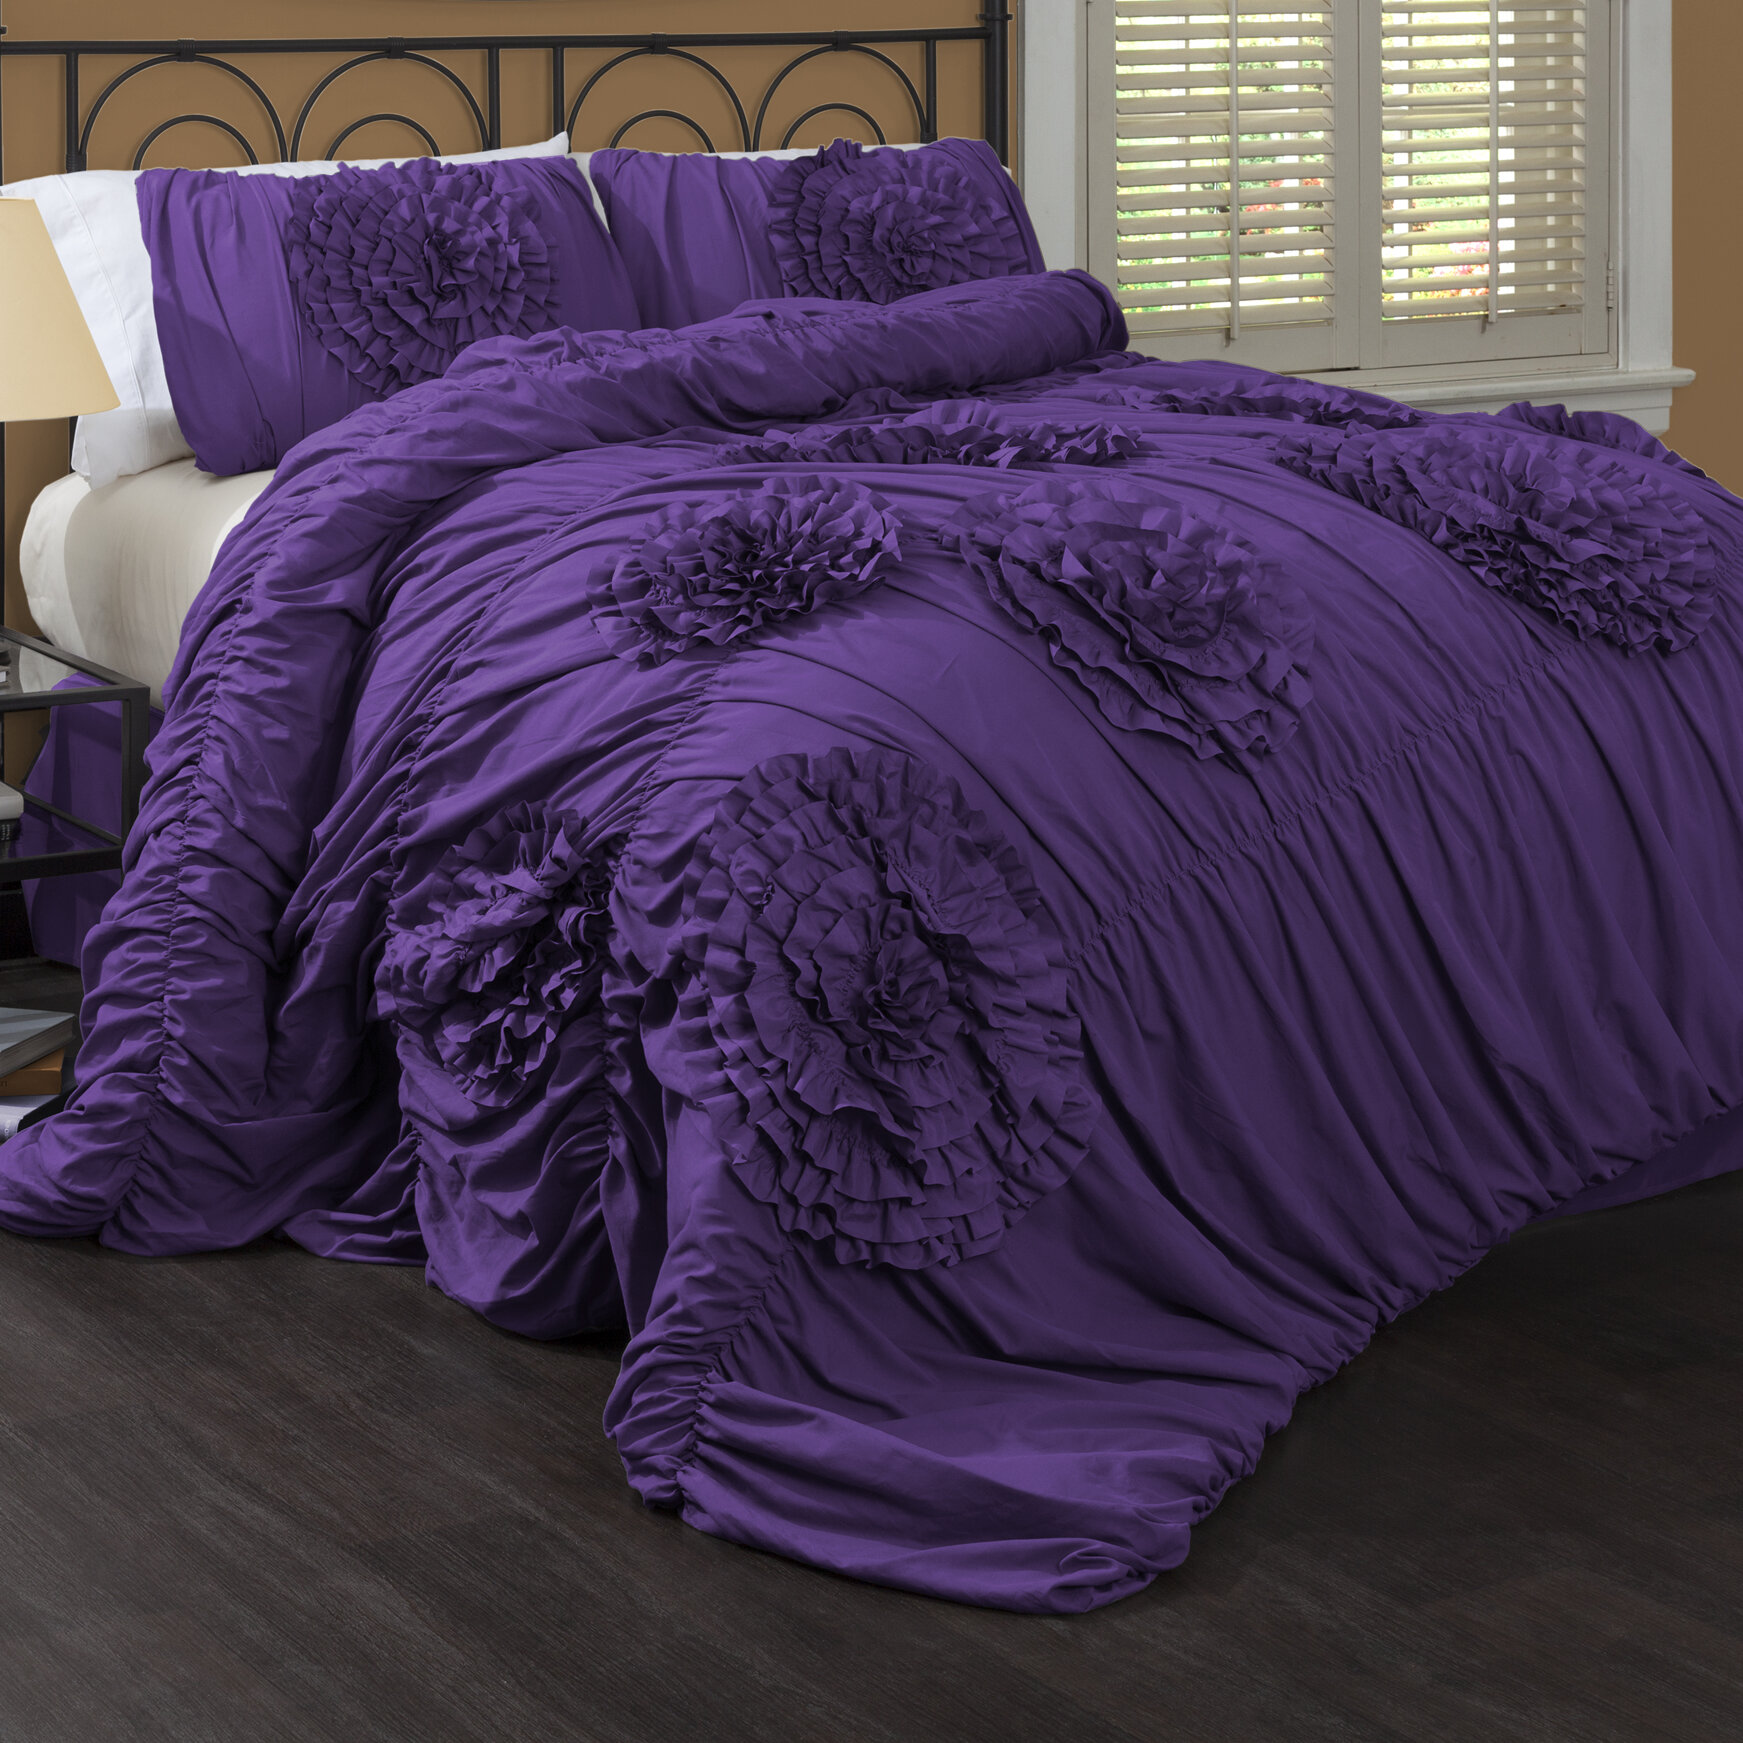 outstanding sets and sophisticated photos decor bed to stock pink applied purple baby comforter your gray grey bedroom pertaining residence bedding